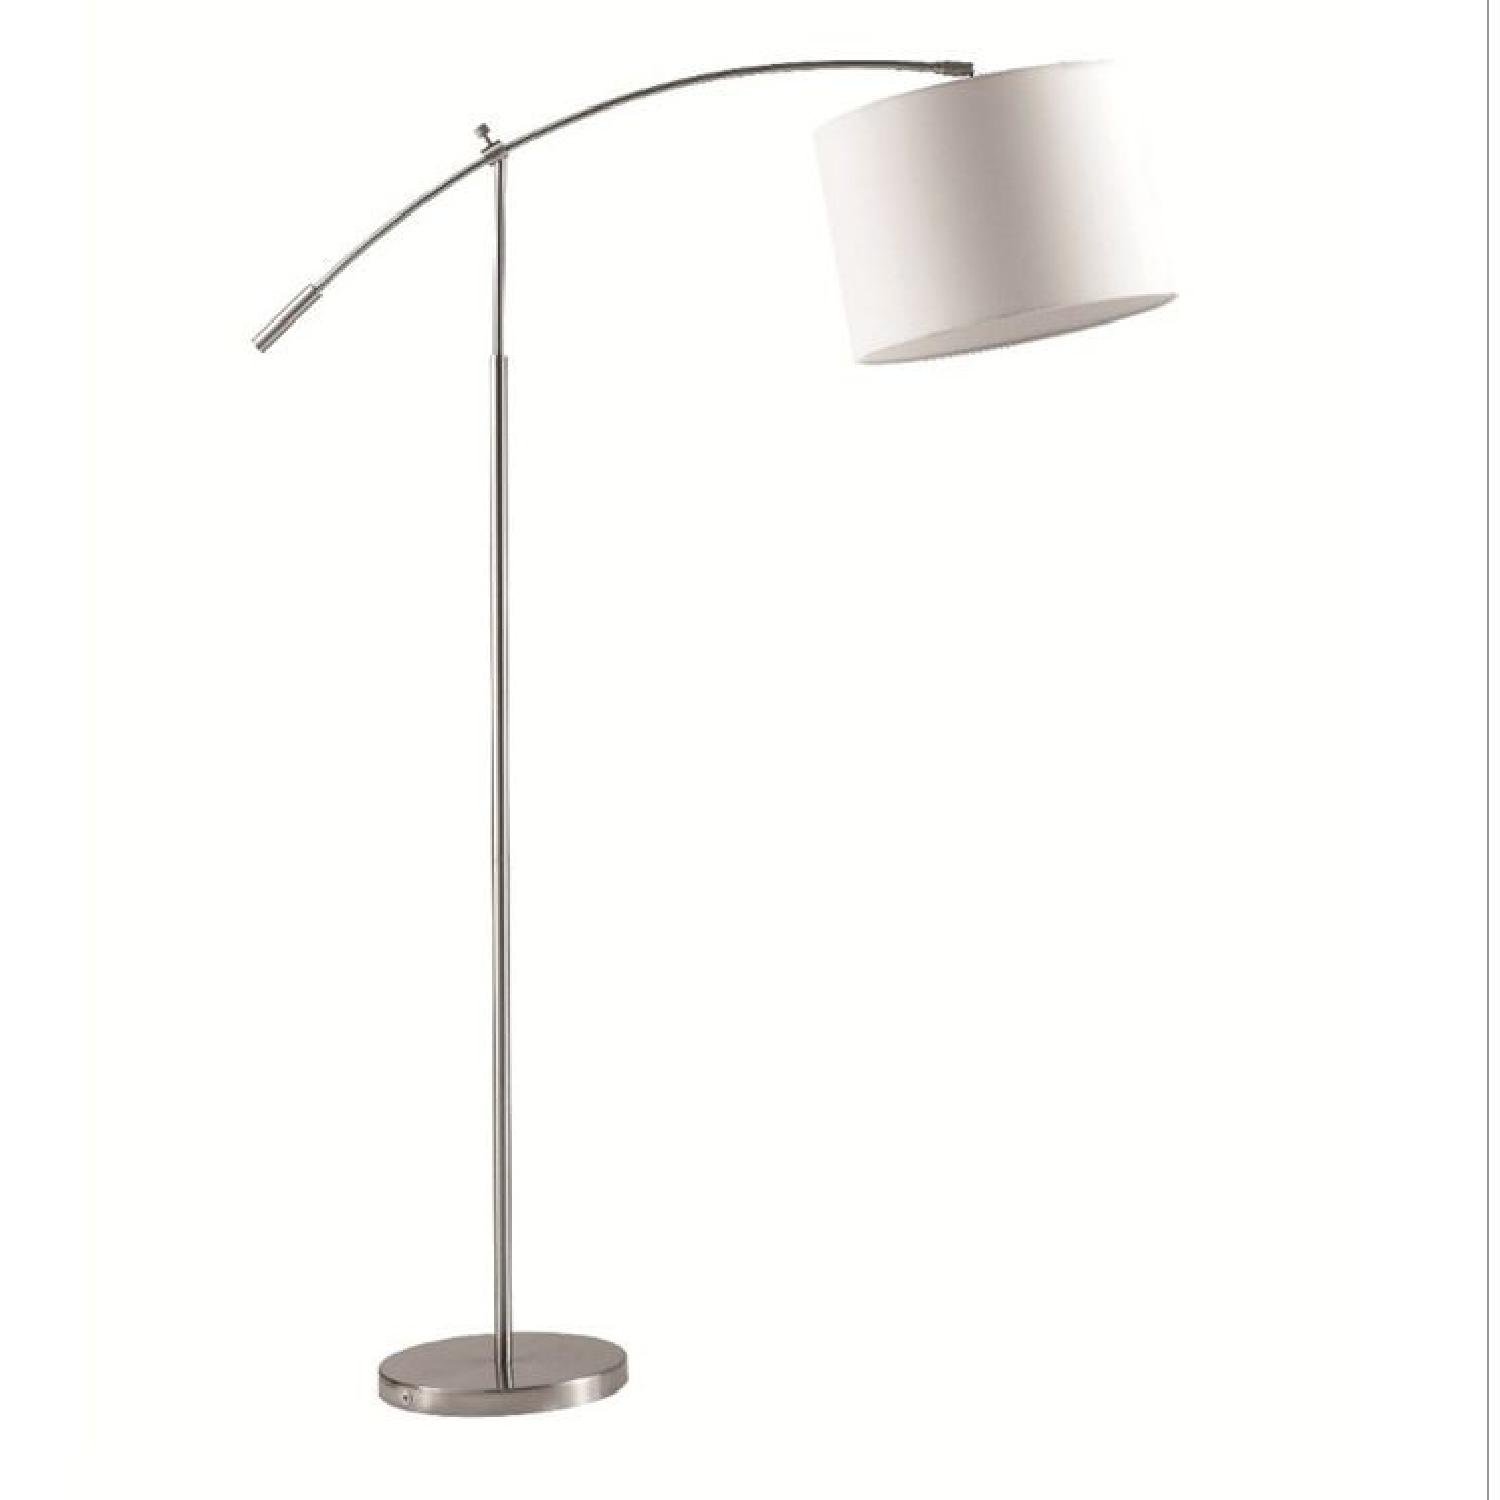 Modern Adjustable Arch Lamp w/ Drum Shade & Chrome Finish Steel Base